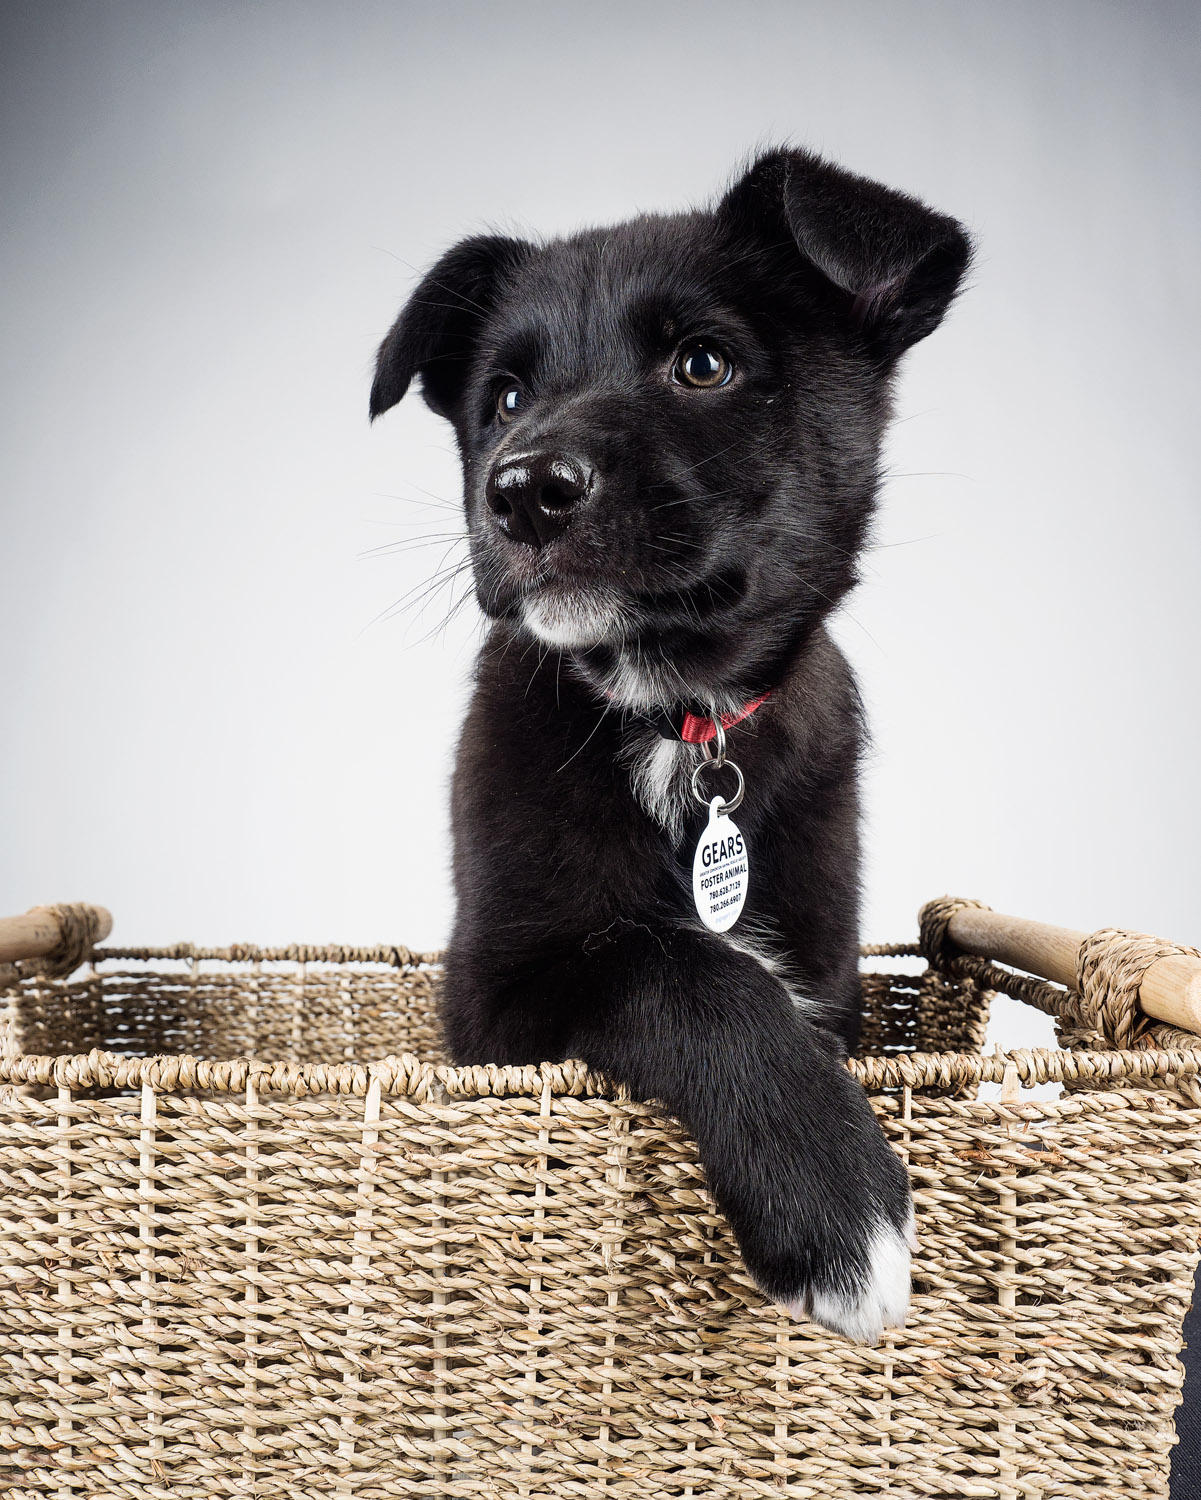 dog in a basket - Tips for Great Lighting for Pet Photography